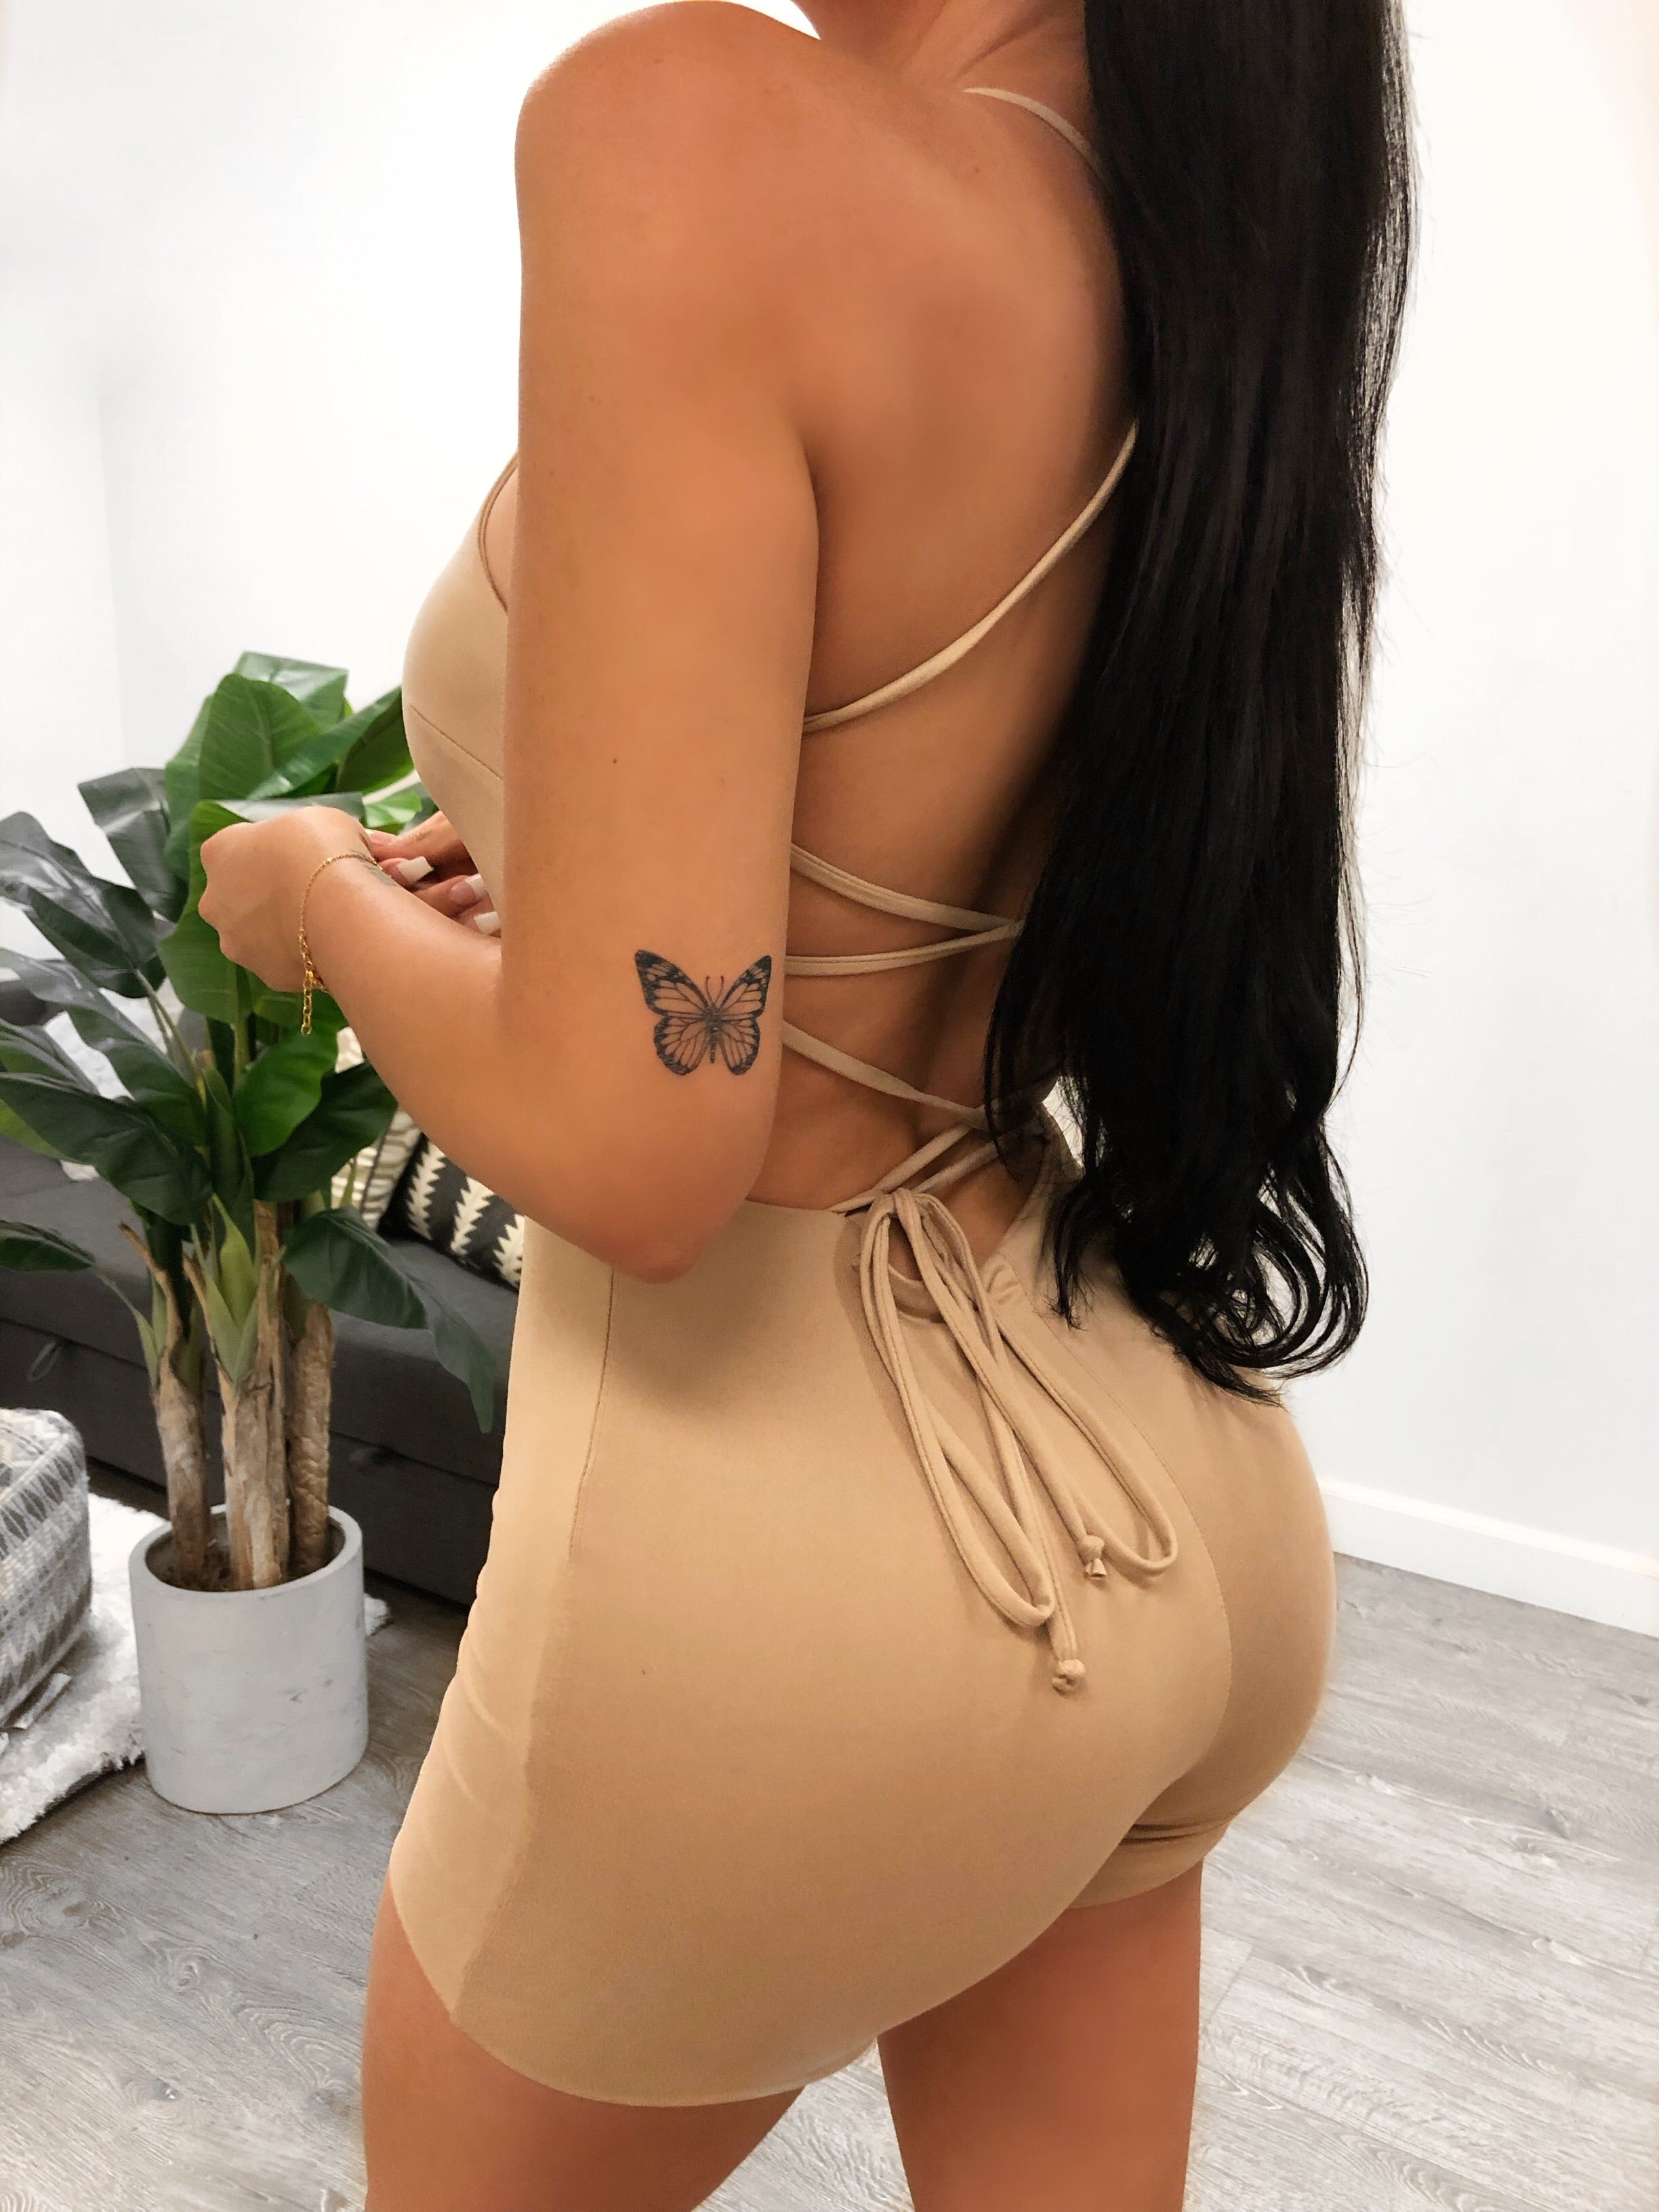 spaghetti strap skin tight romper, U shape neckline showing mid cleavage, oval shaped opening on stomach area, bottom ends mid thigh, back has strings that criss cross and tie up at the bottom